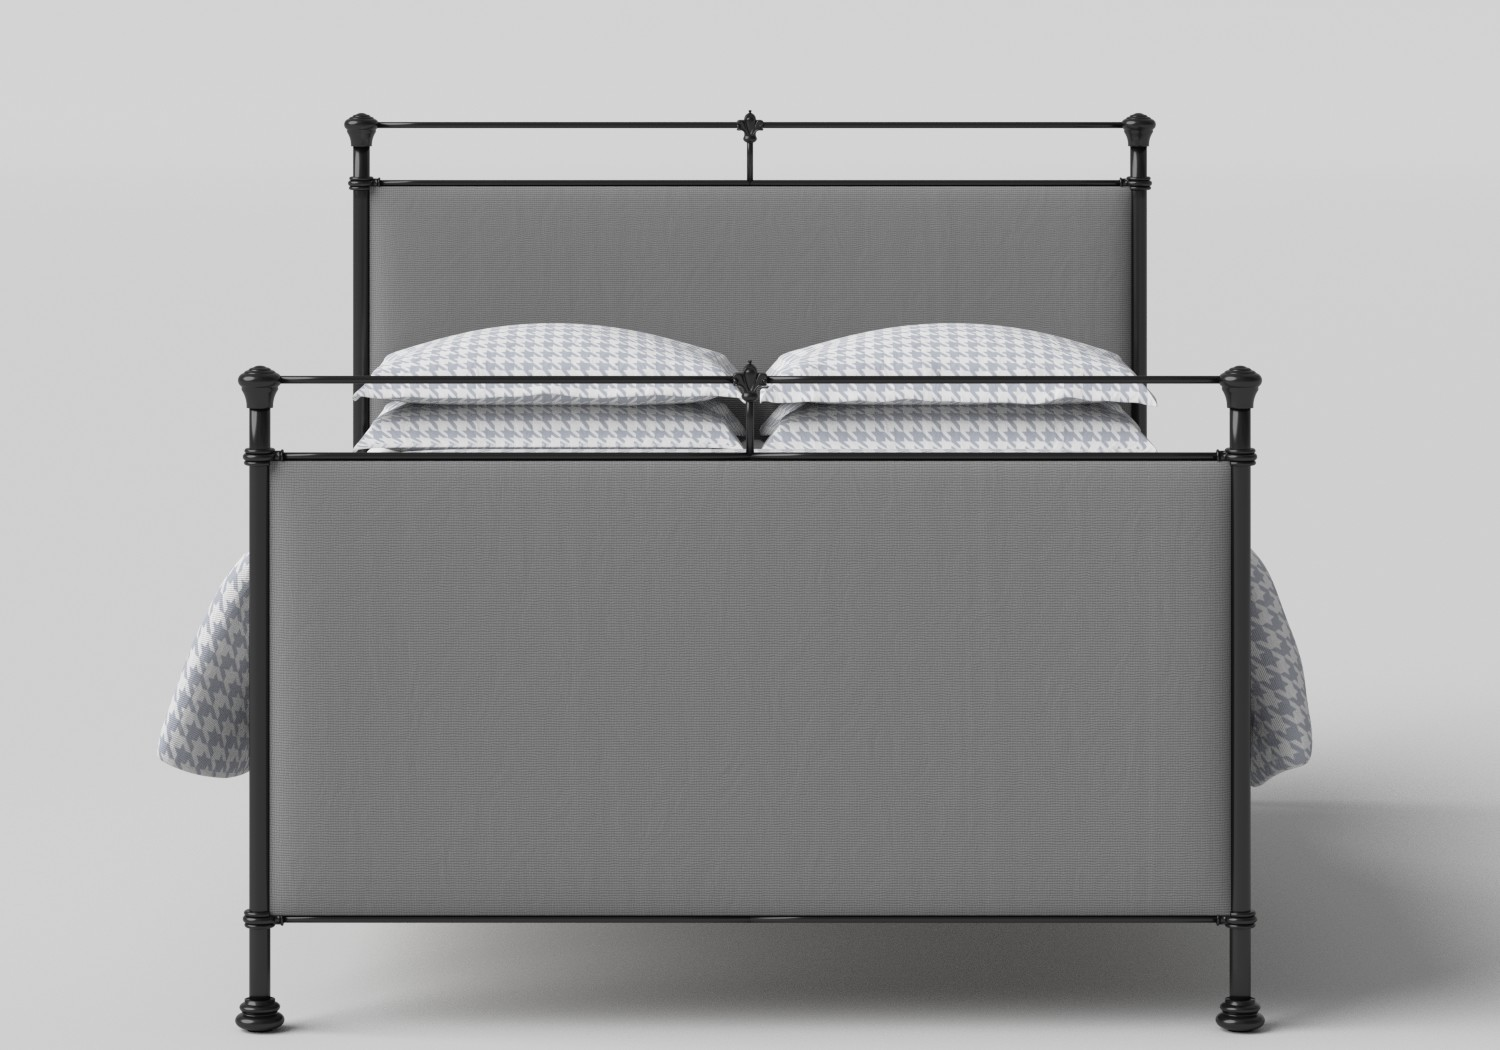 Lille Iron/Metal Upholstered Bed in Satin Black with Grey fabric